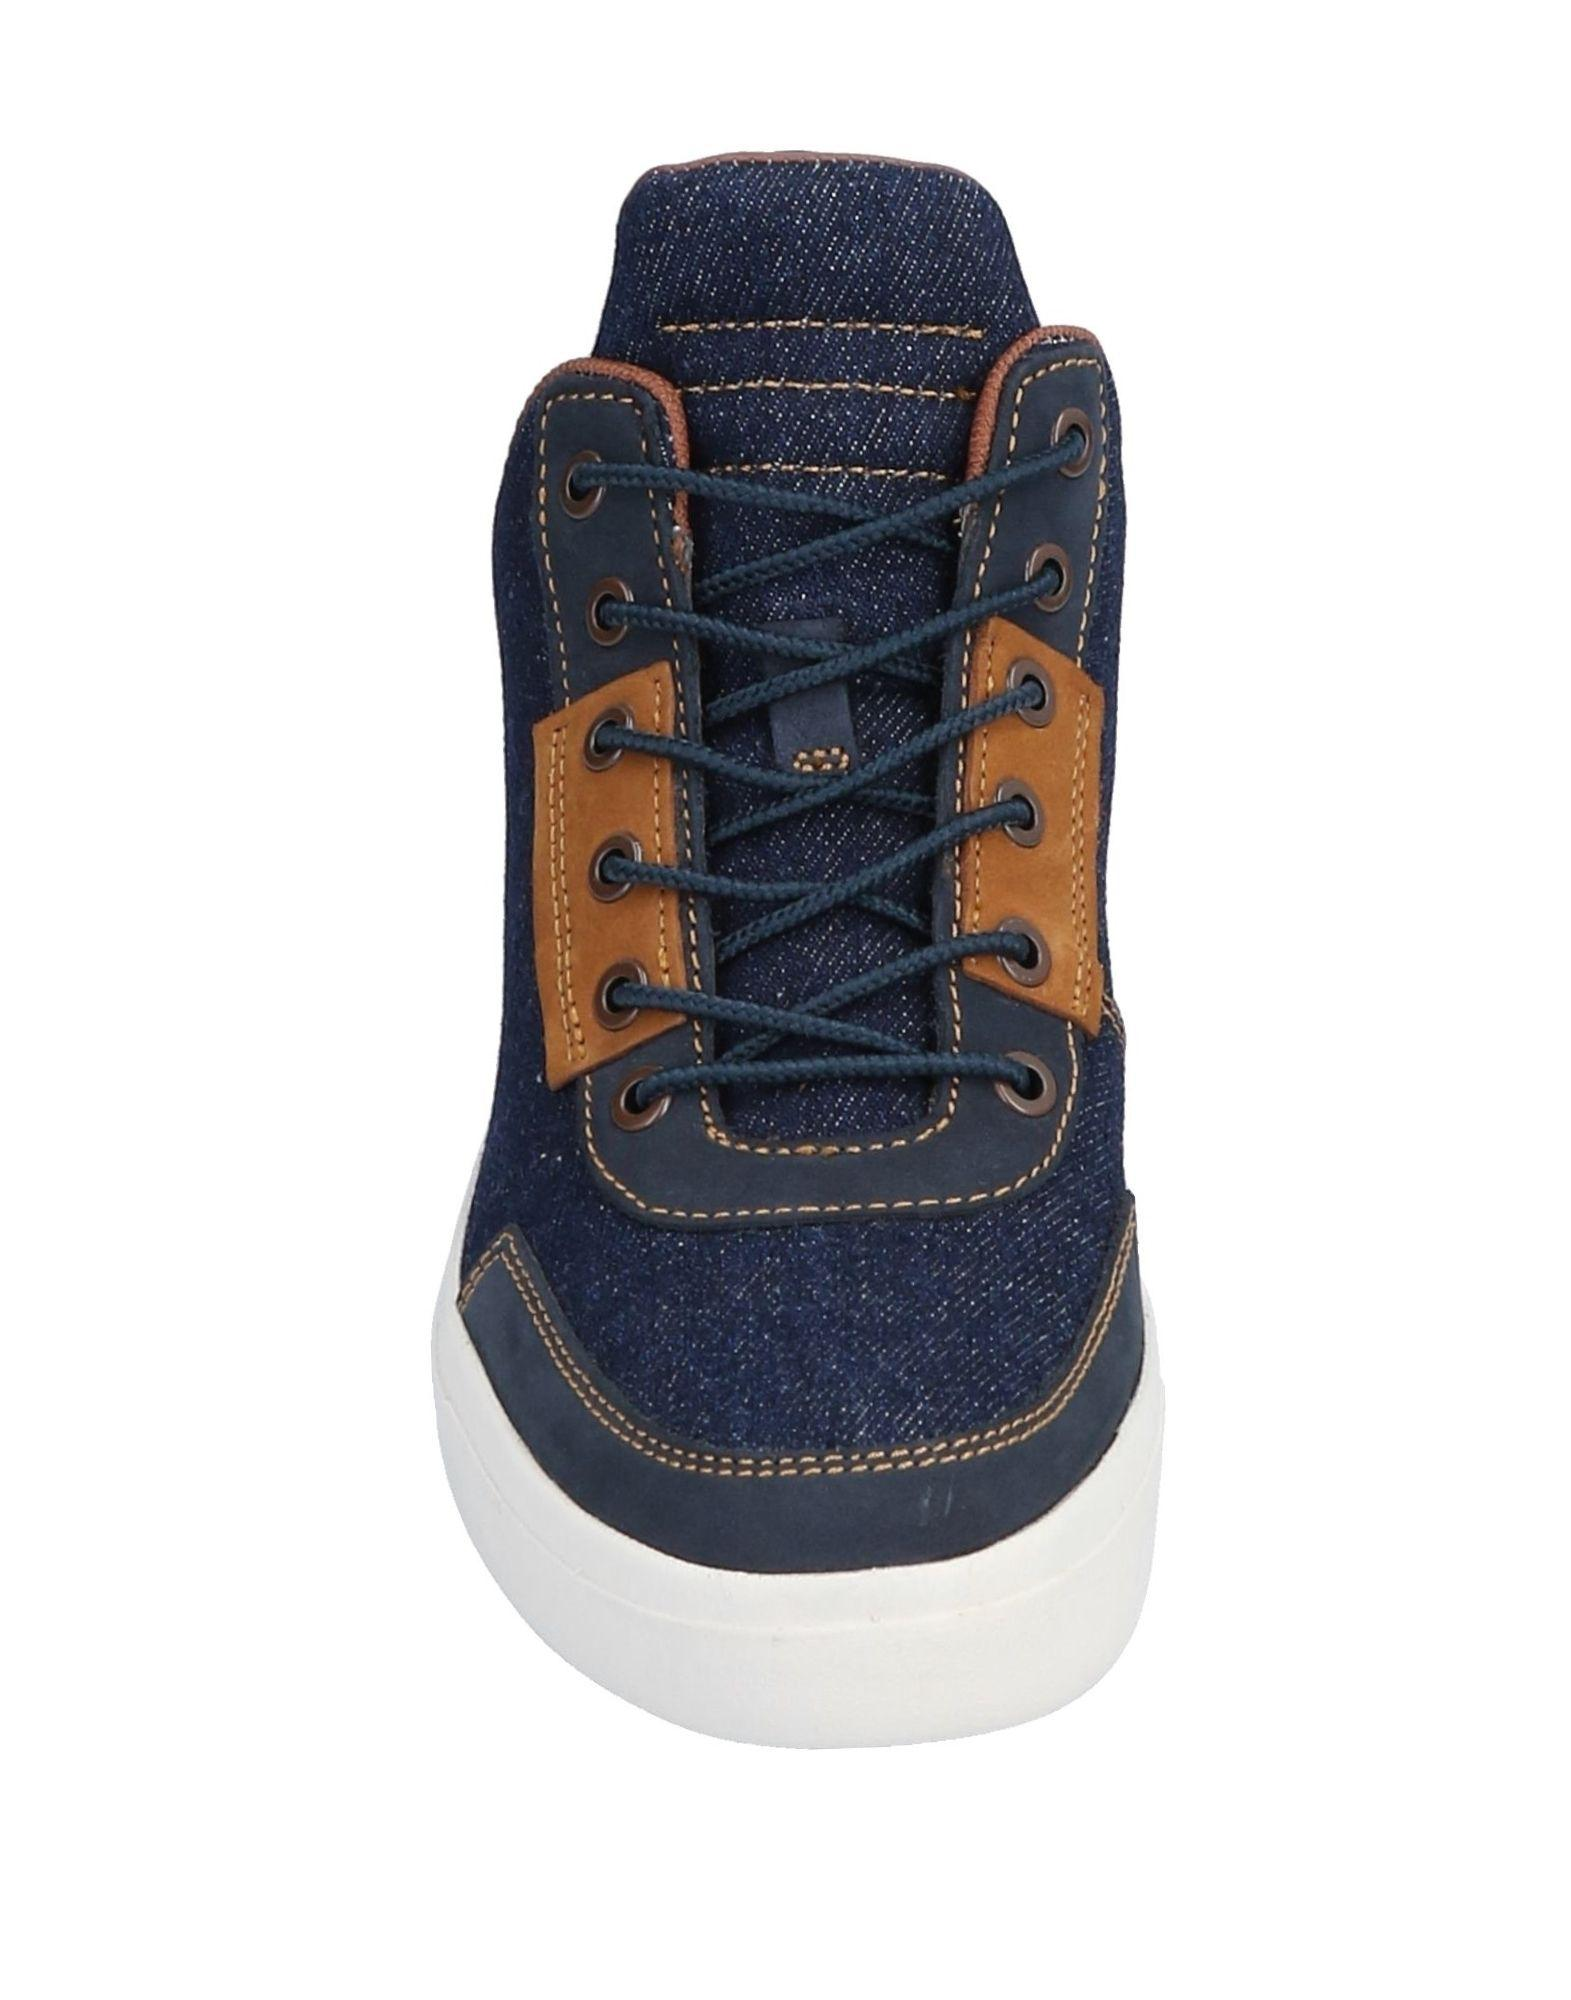 38a986c15b7441 Timberland High-tops   Sneakers in Blue - Lyst